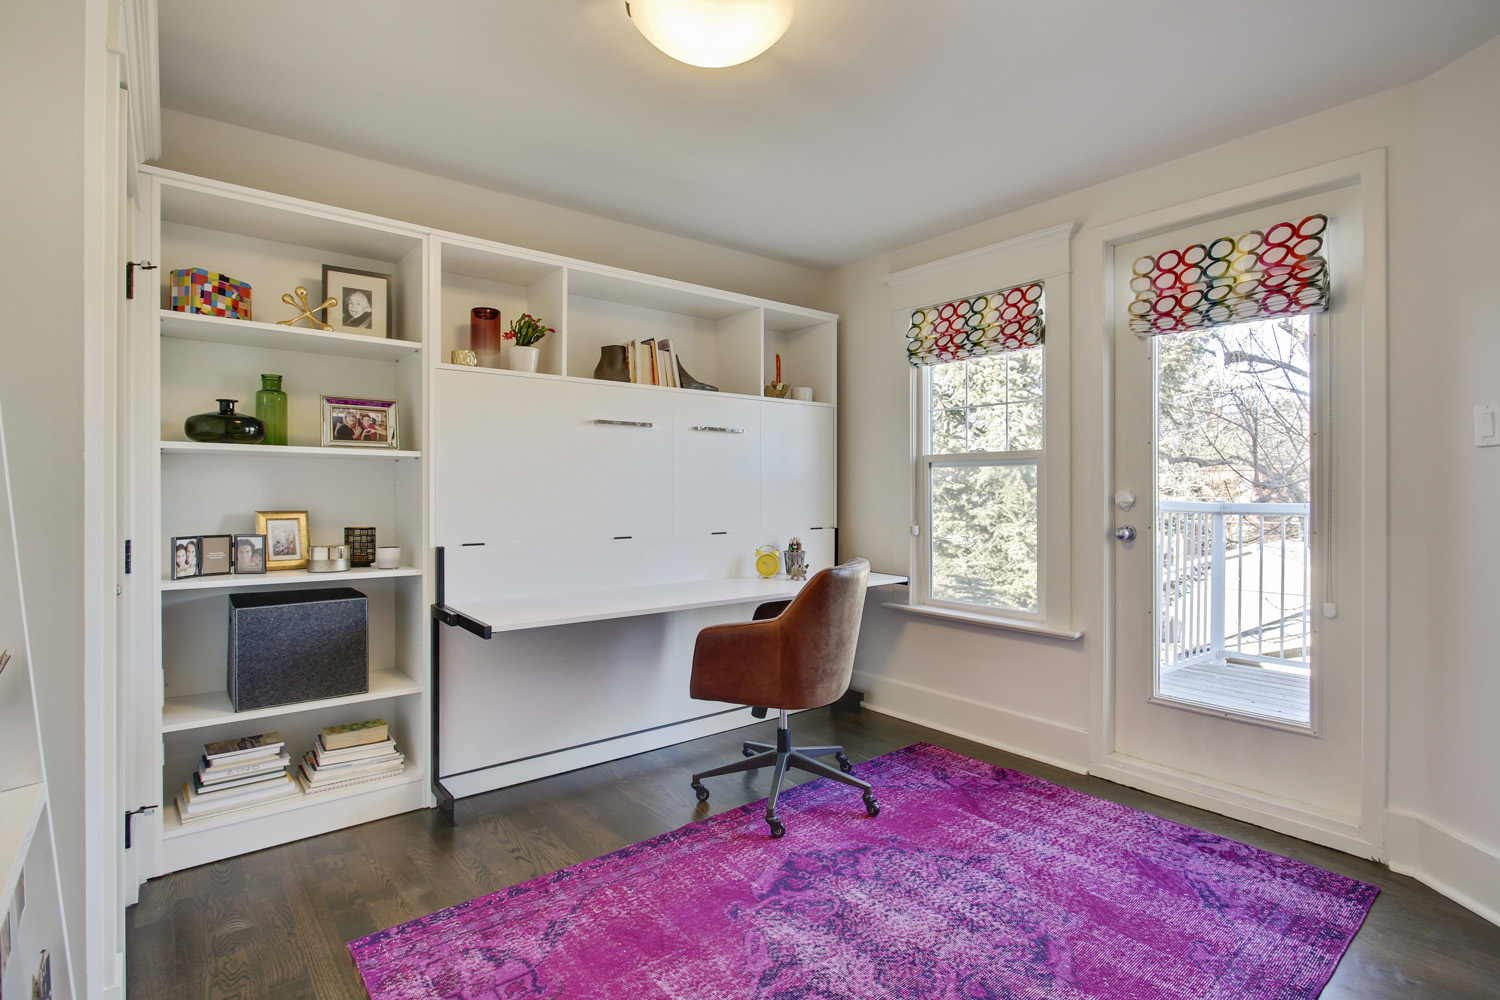 After - Office / Guest room